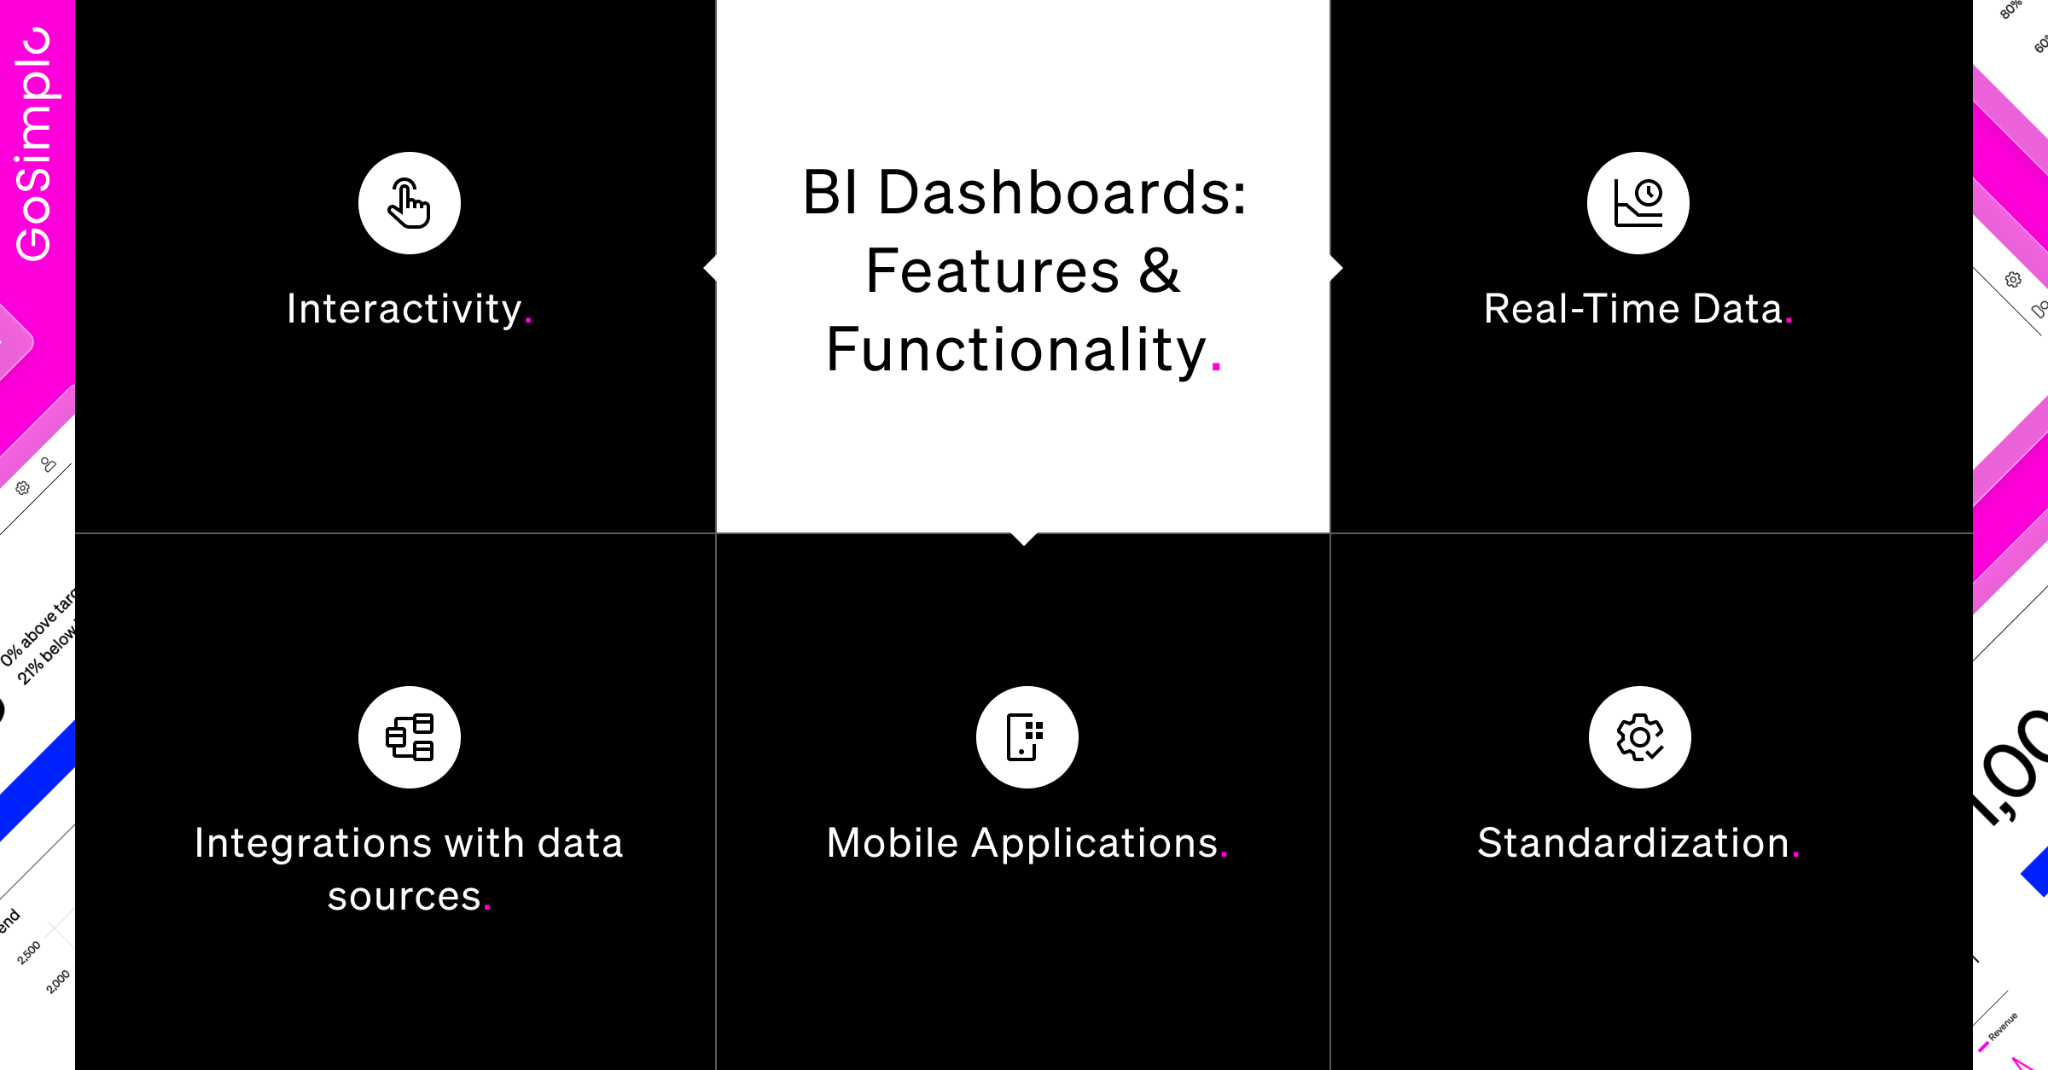 graphic representation of the features of BI dashboards for businesses. White text on black background.